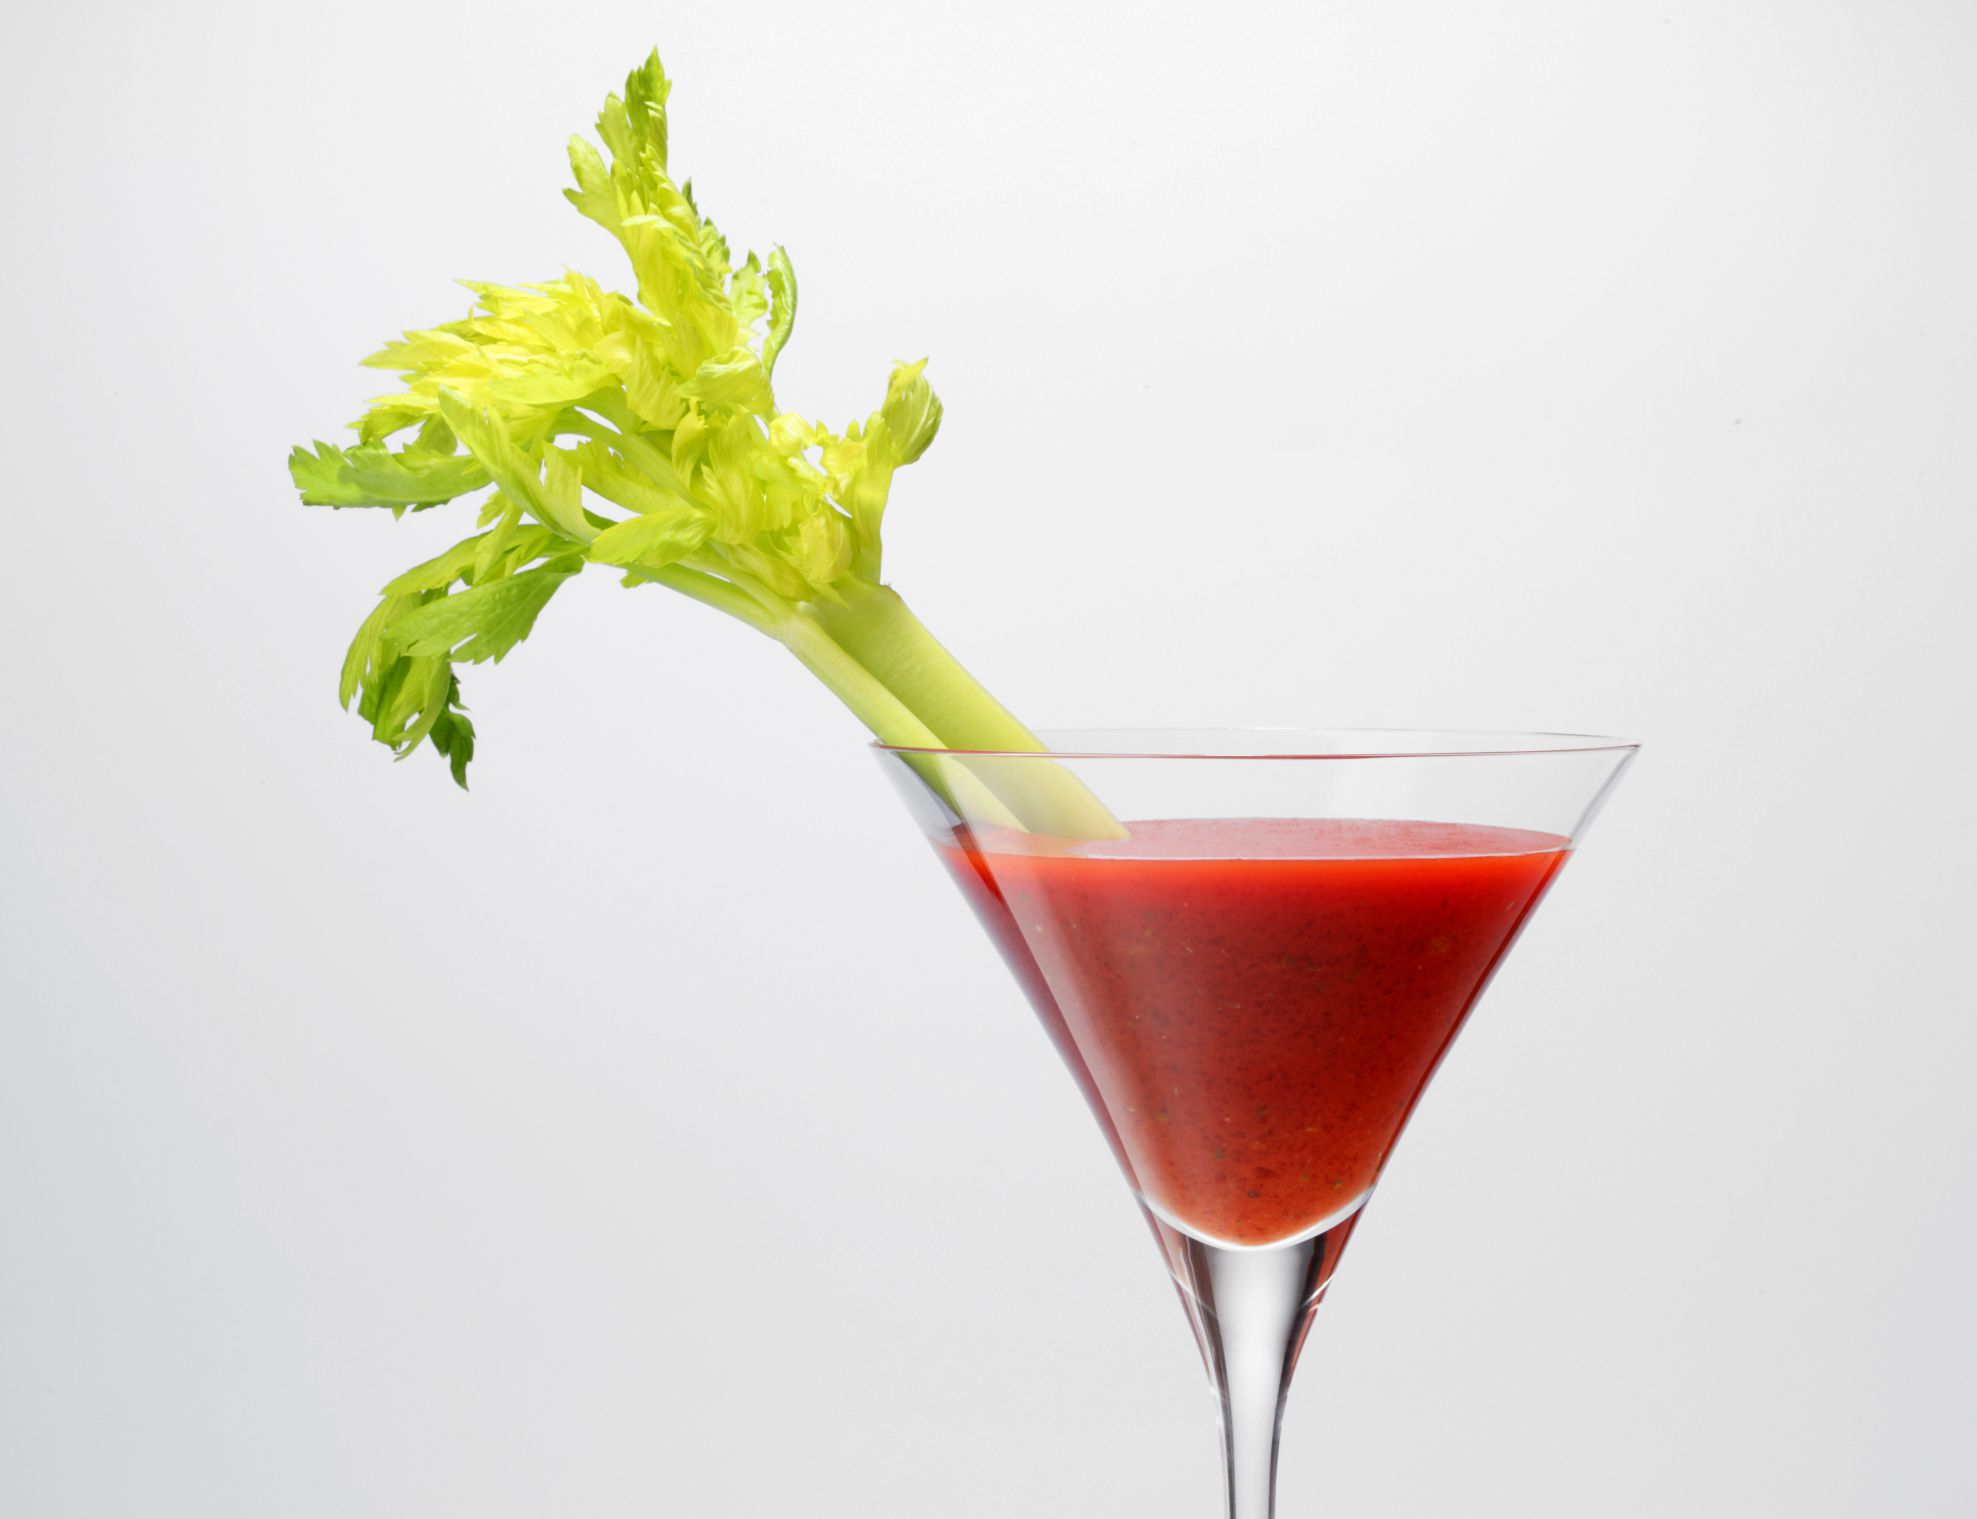 Tomato juice in a glass with a celery stick